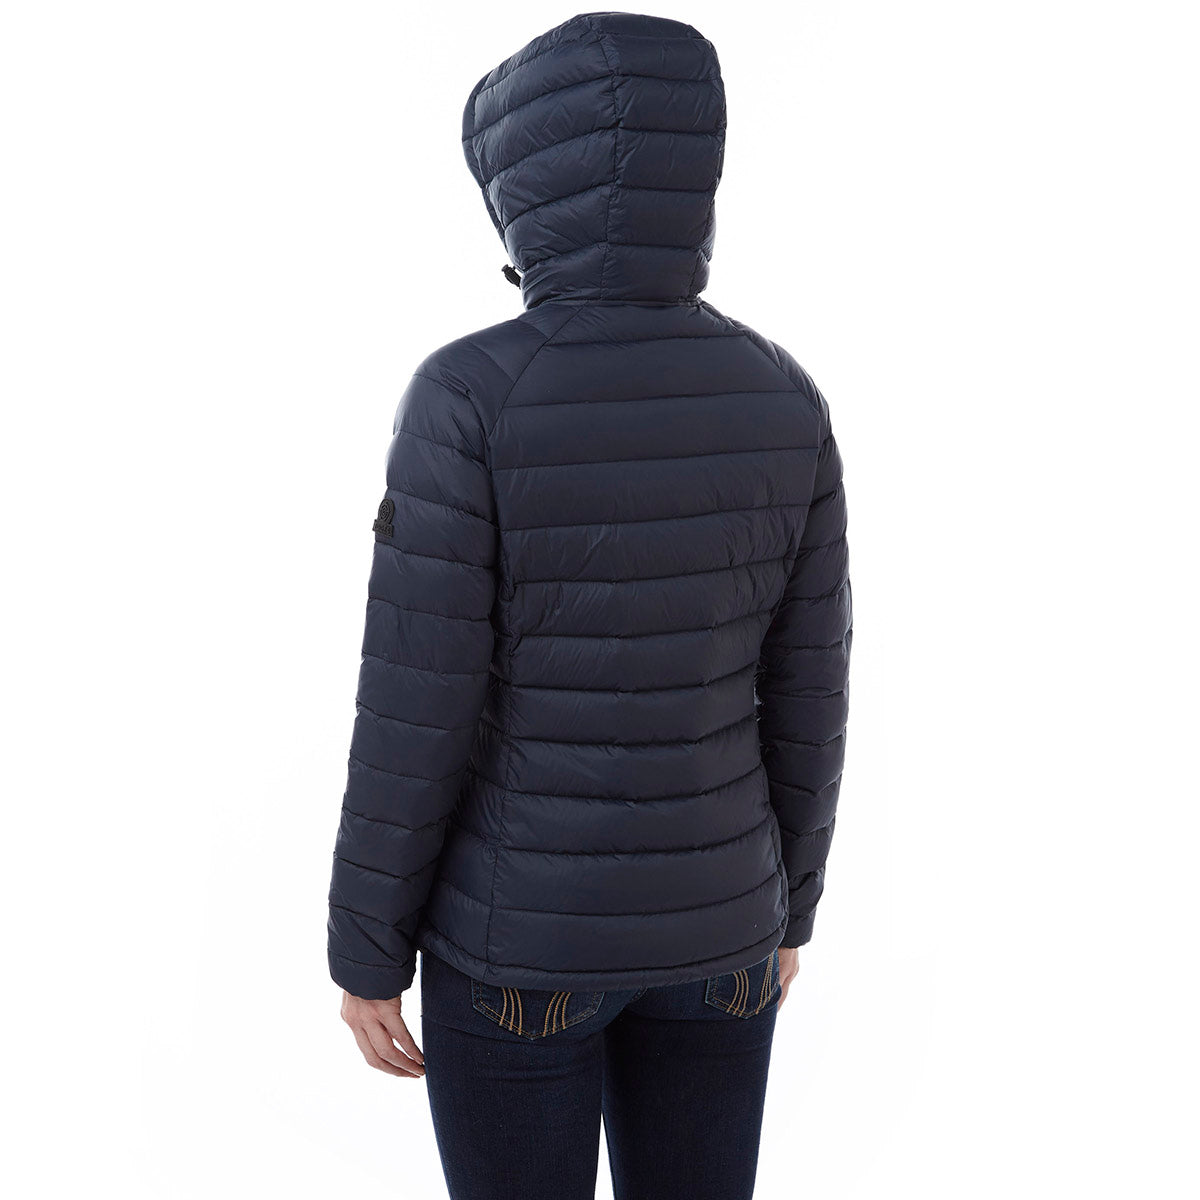 Pro Womens Down Hooded Jacket - Navy image 4